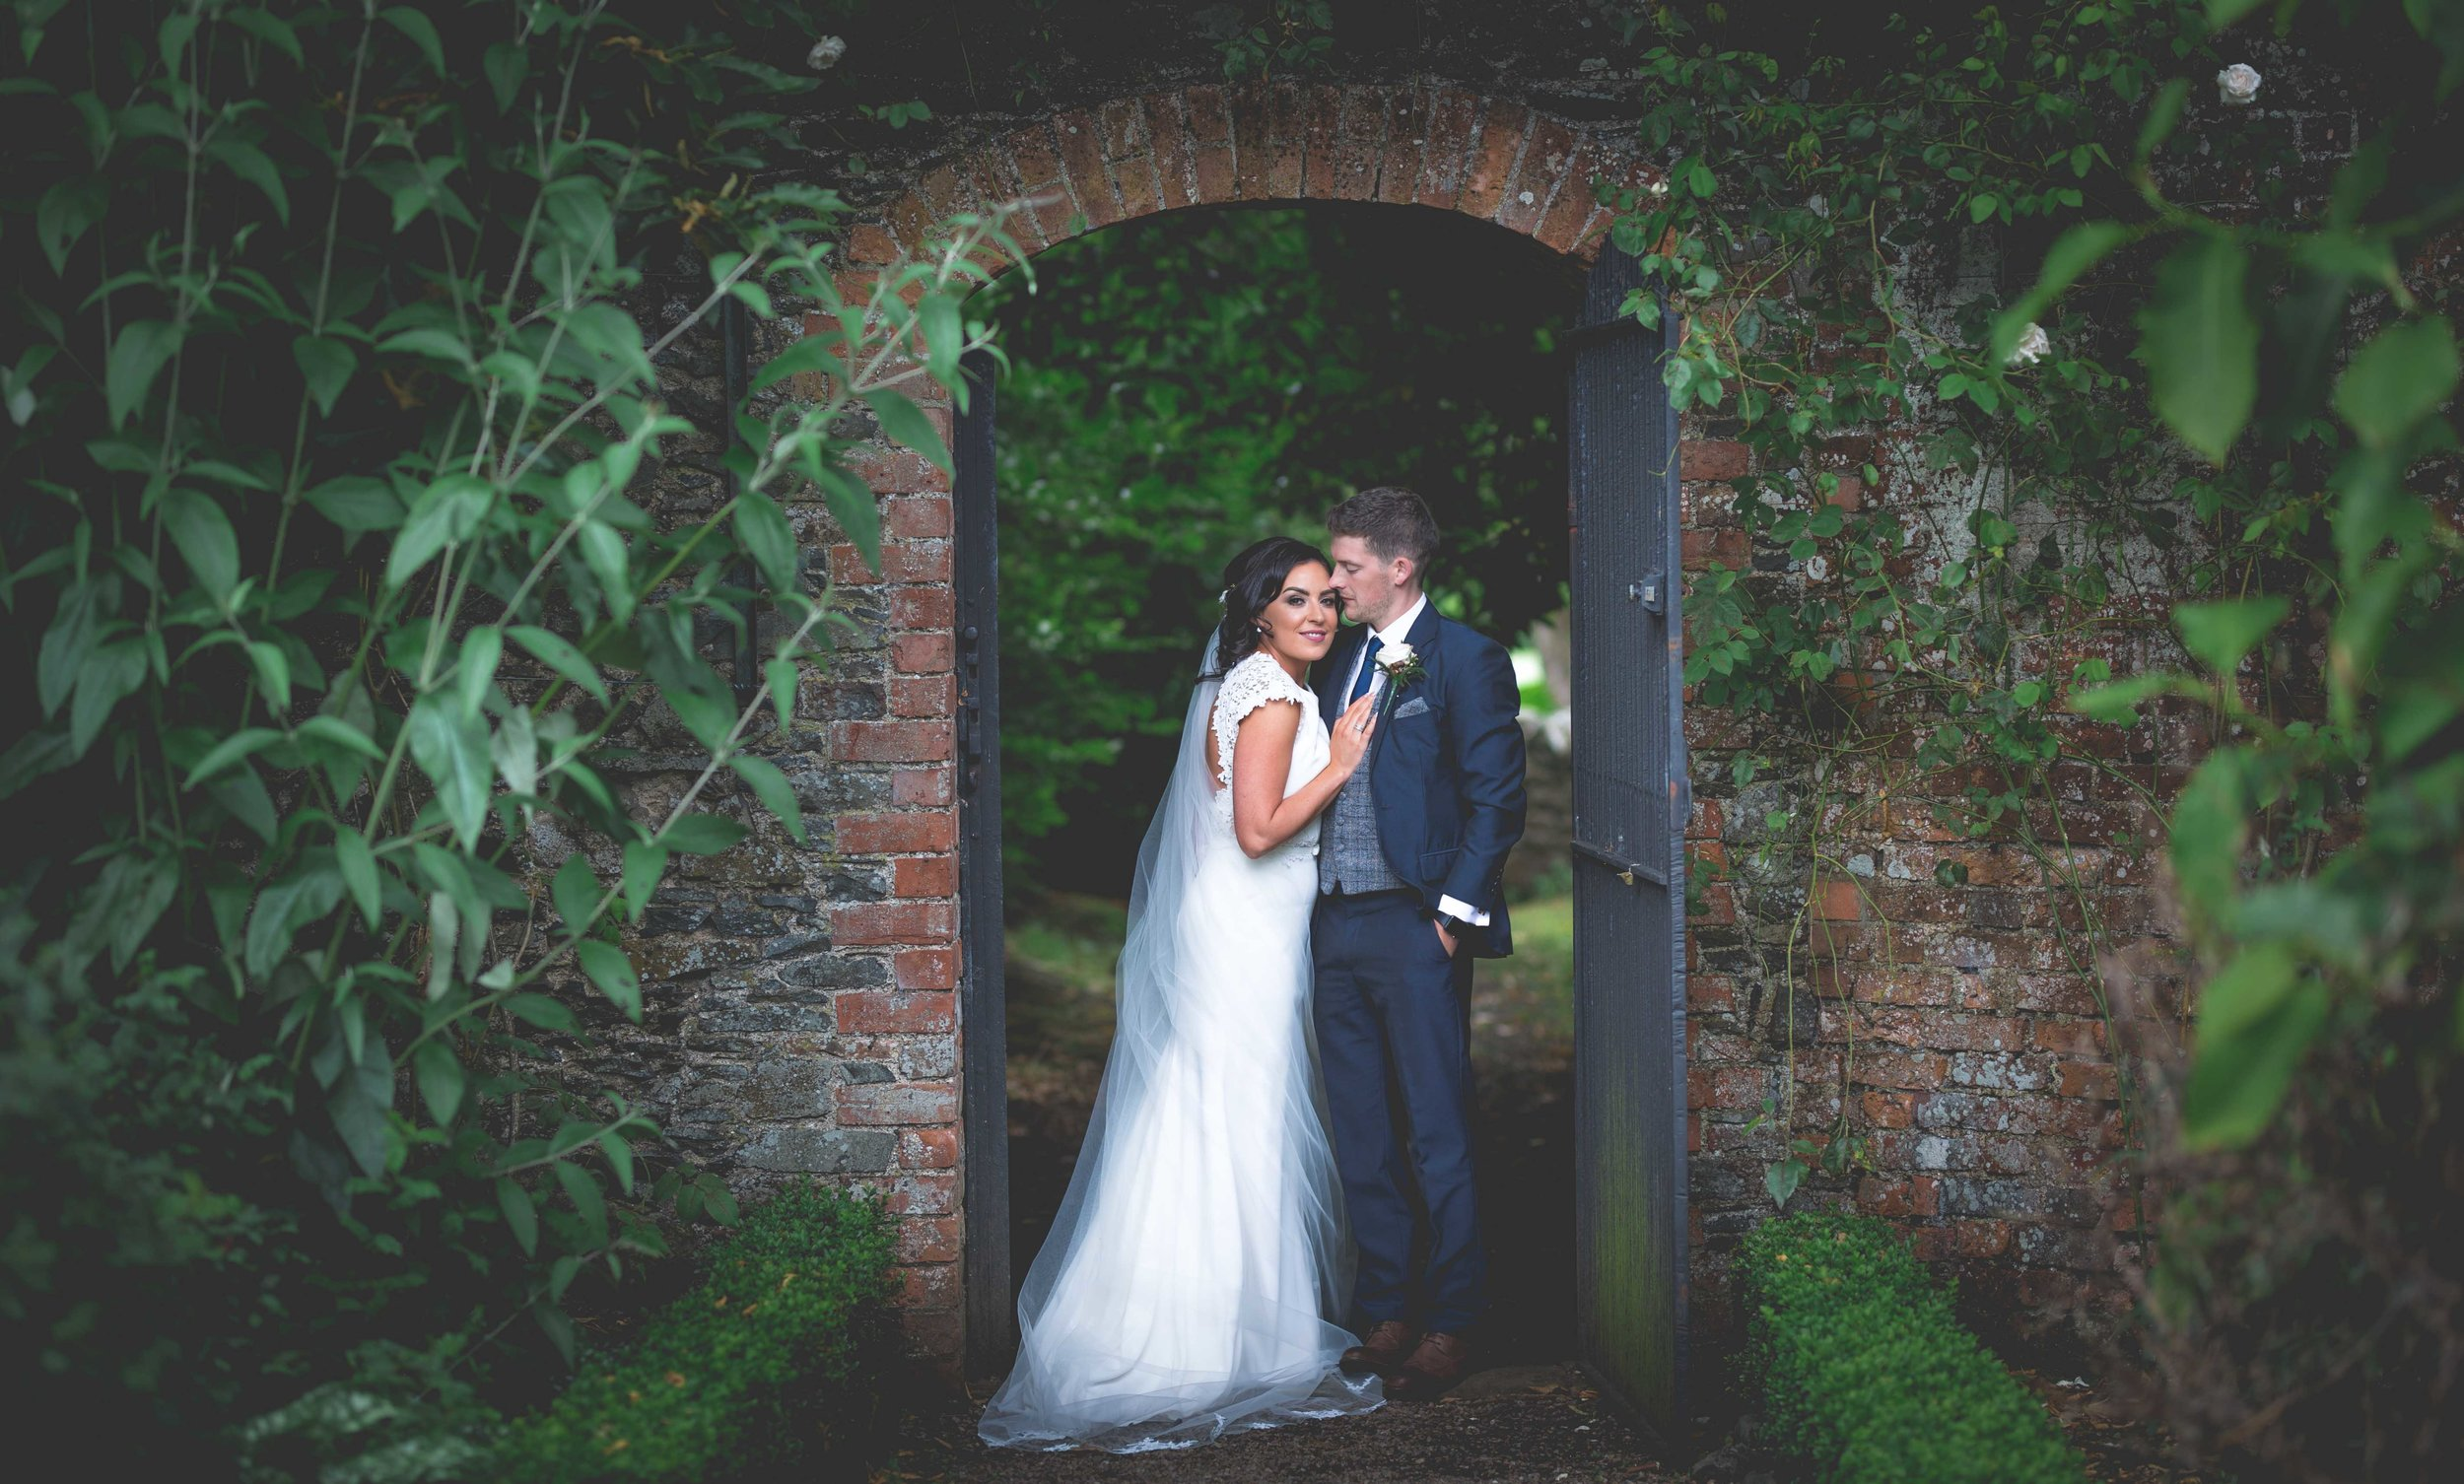 Northern Ireland Wedding Photographer | Brian McEwan Photography | Affordable Wedding Photography Throughout Antrim Down Armagh Tyrone Londonderry Derry Down Fermanagh -16.jpg